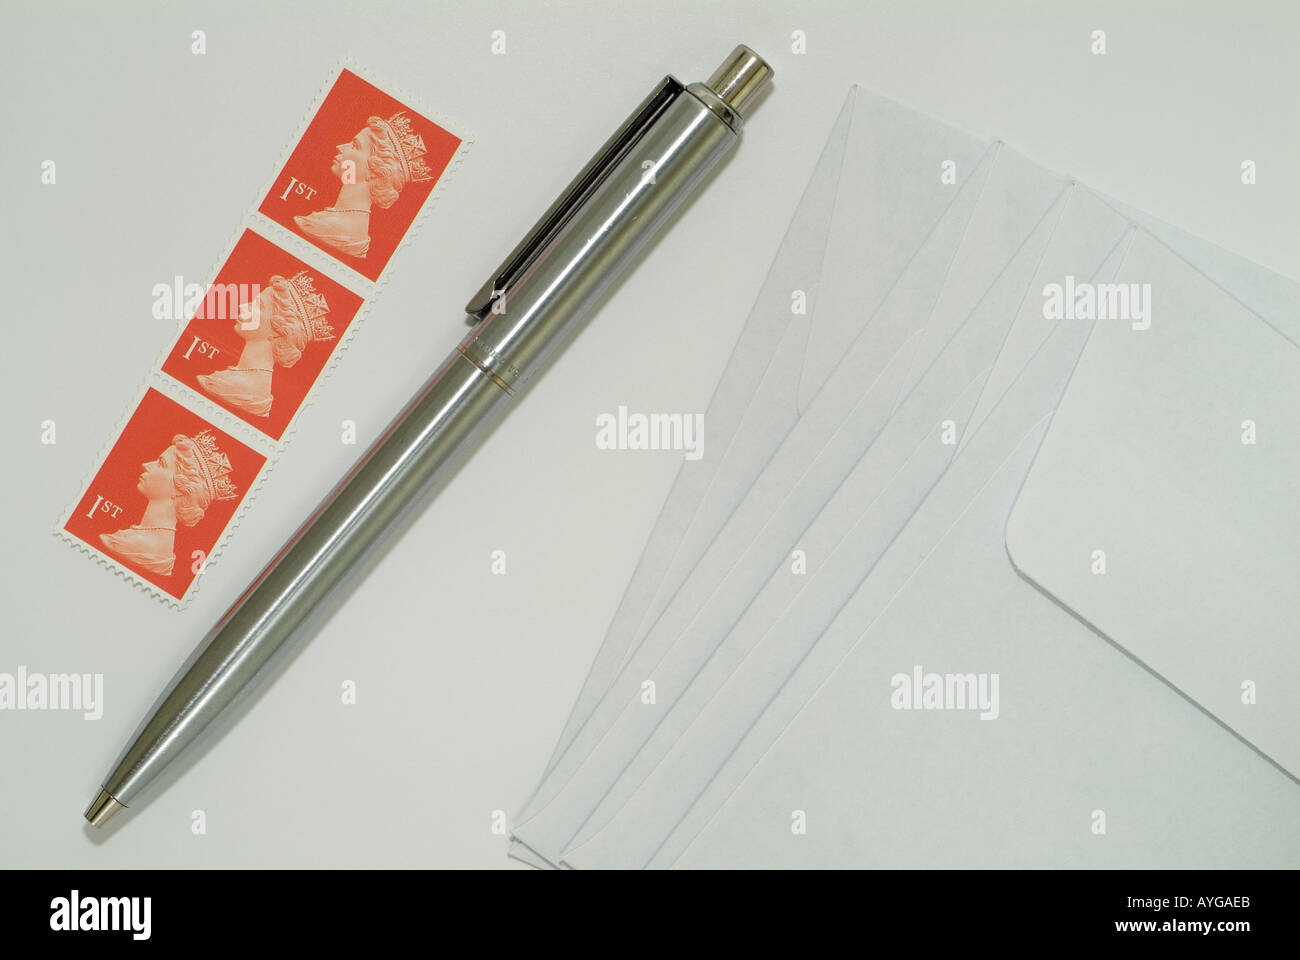 2c8275ba44e9 United Kingdom First Class Postage Stamps and Pen on Writing Paper Next to  Envelopes. -